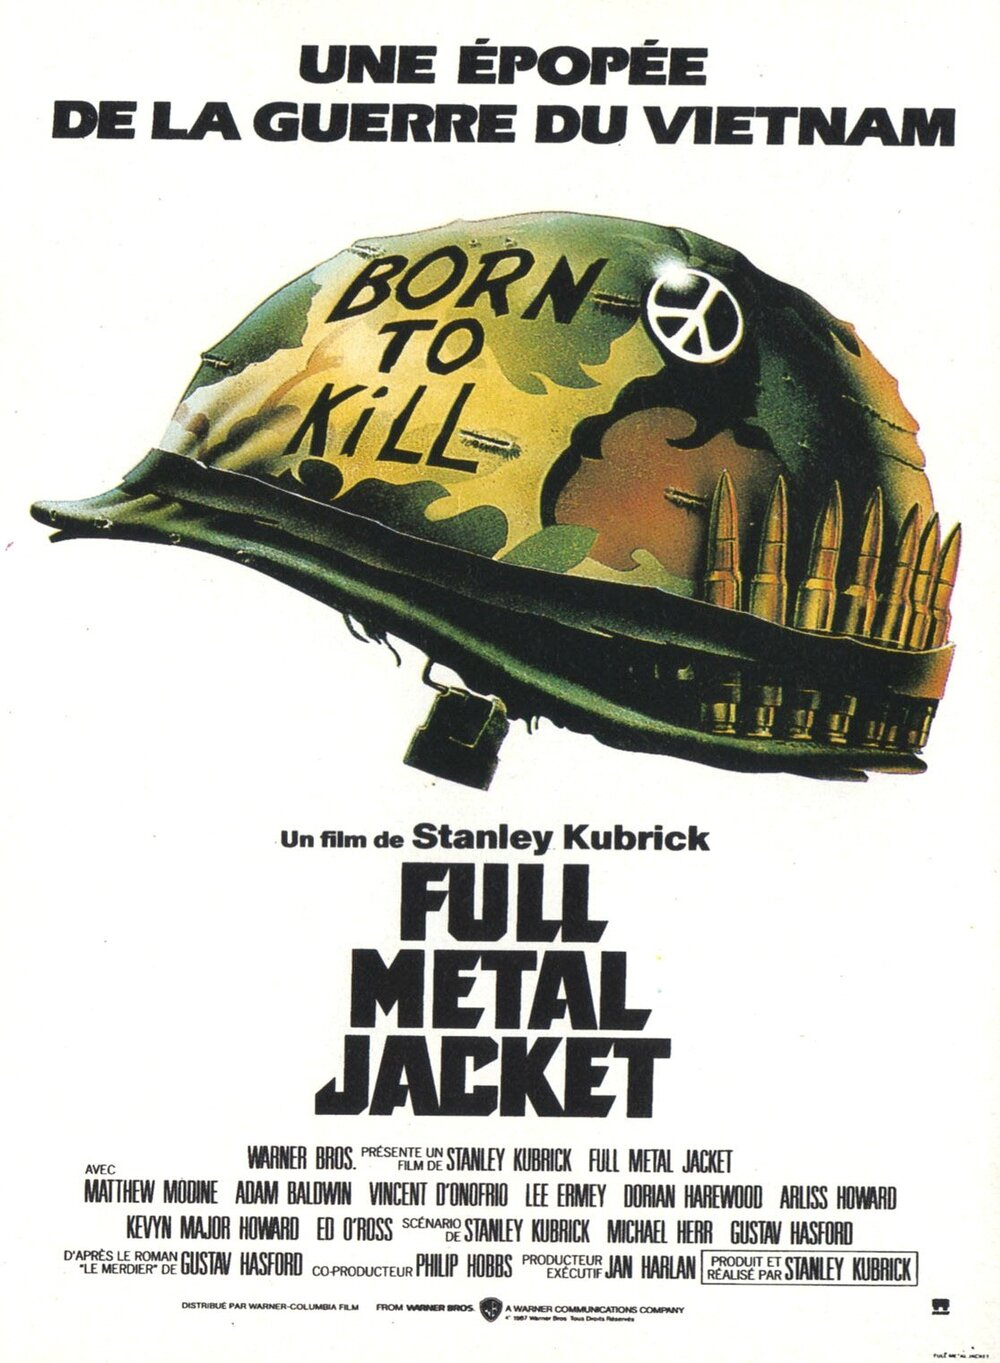 full metal jacket and platoon Buy full metal jacket at walmartcom  full metal jacket image 1 of 2   platoon 2 $500 list$998 2-day shipping american history x ( (dvd)) 20 $6 08.